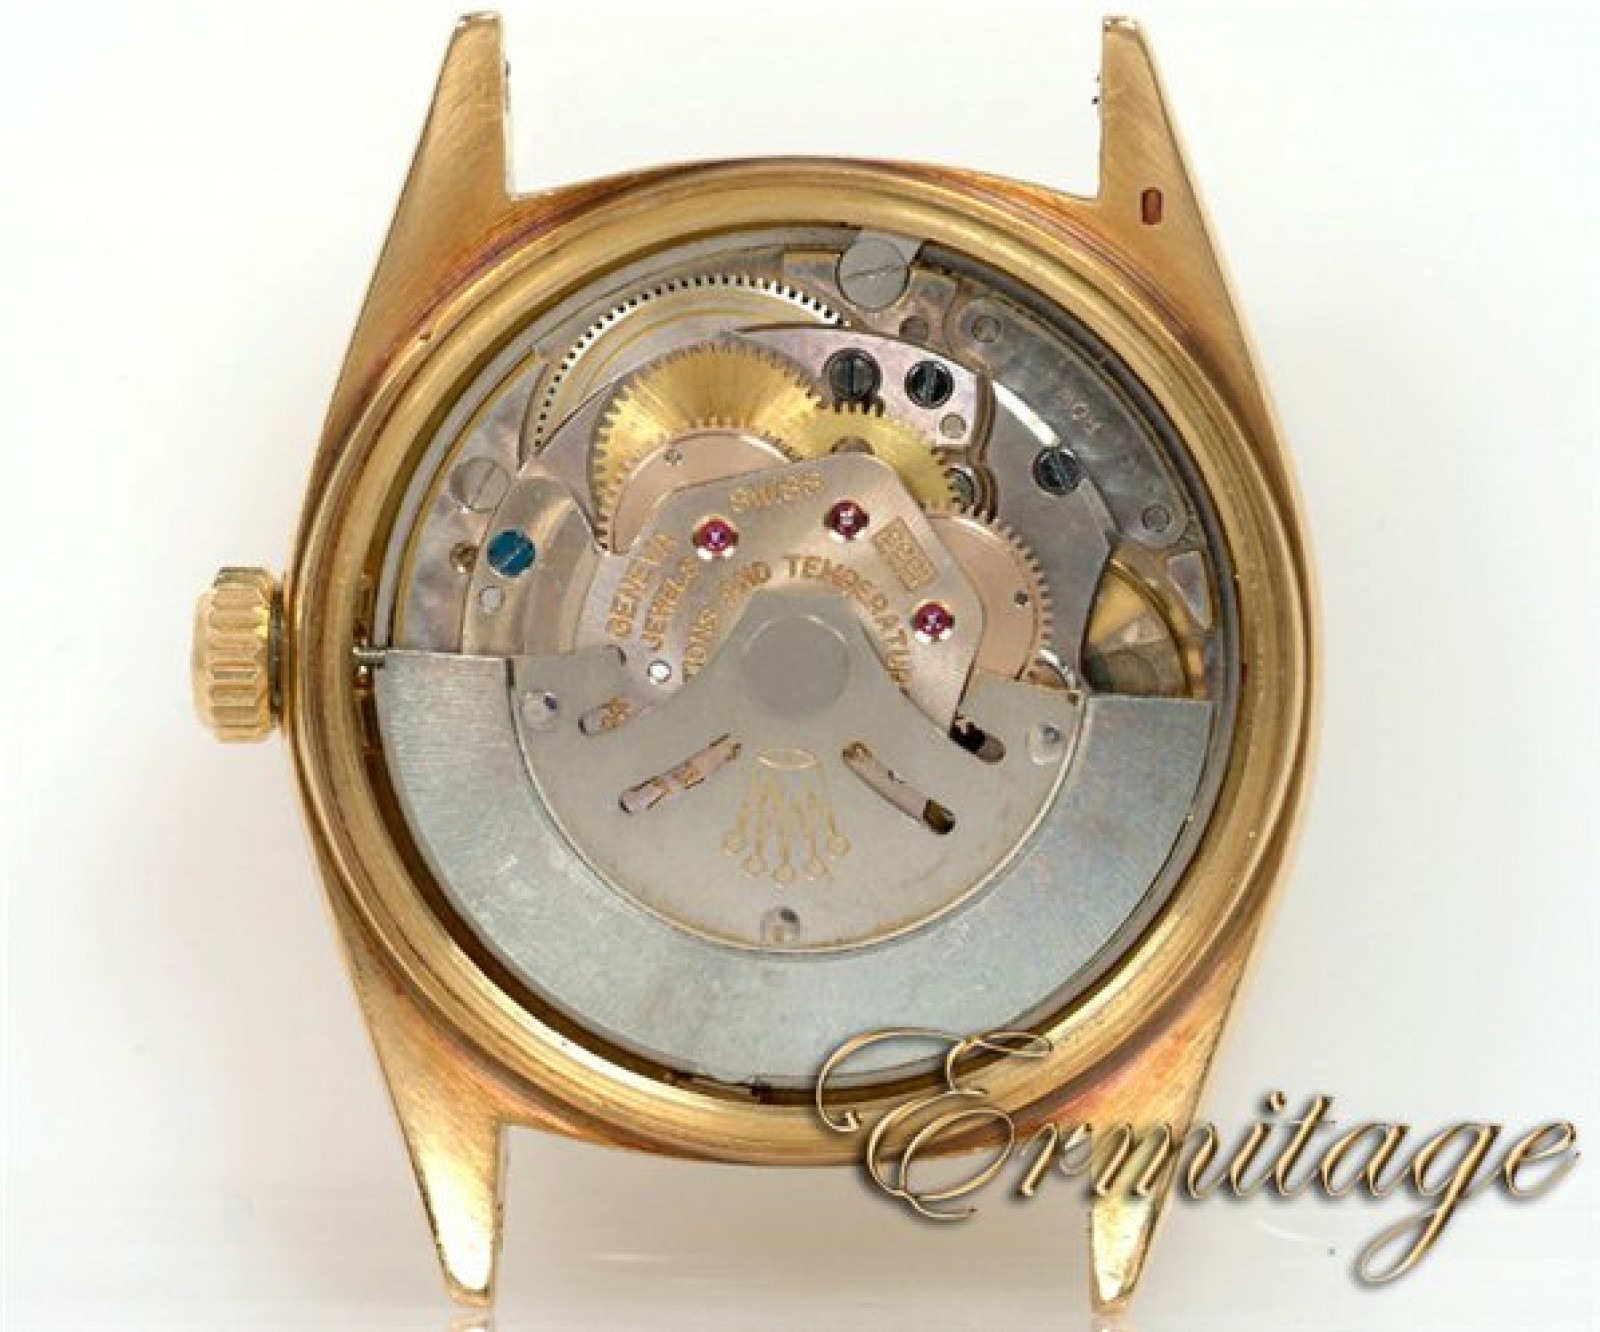 Vintage Rolex Day-Date 1803 Gold Champagne with Champagne Dial